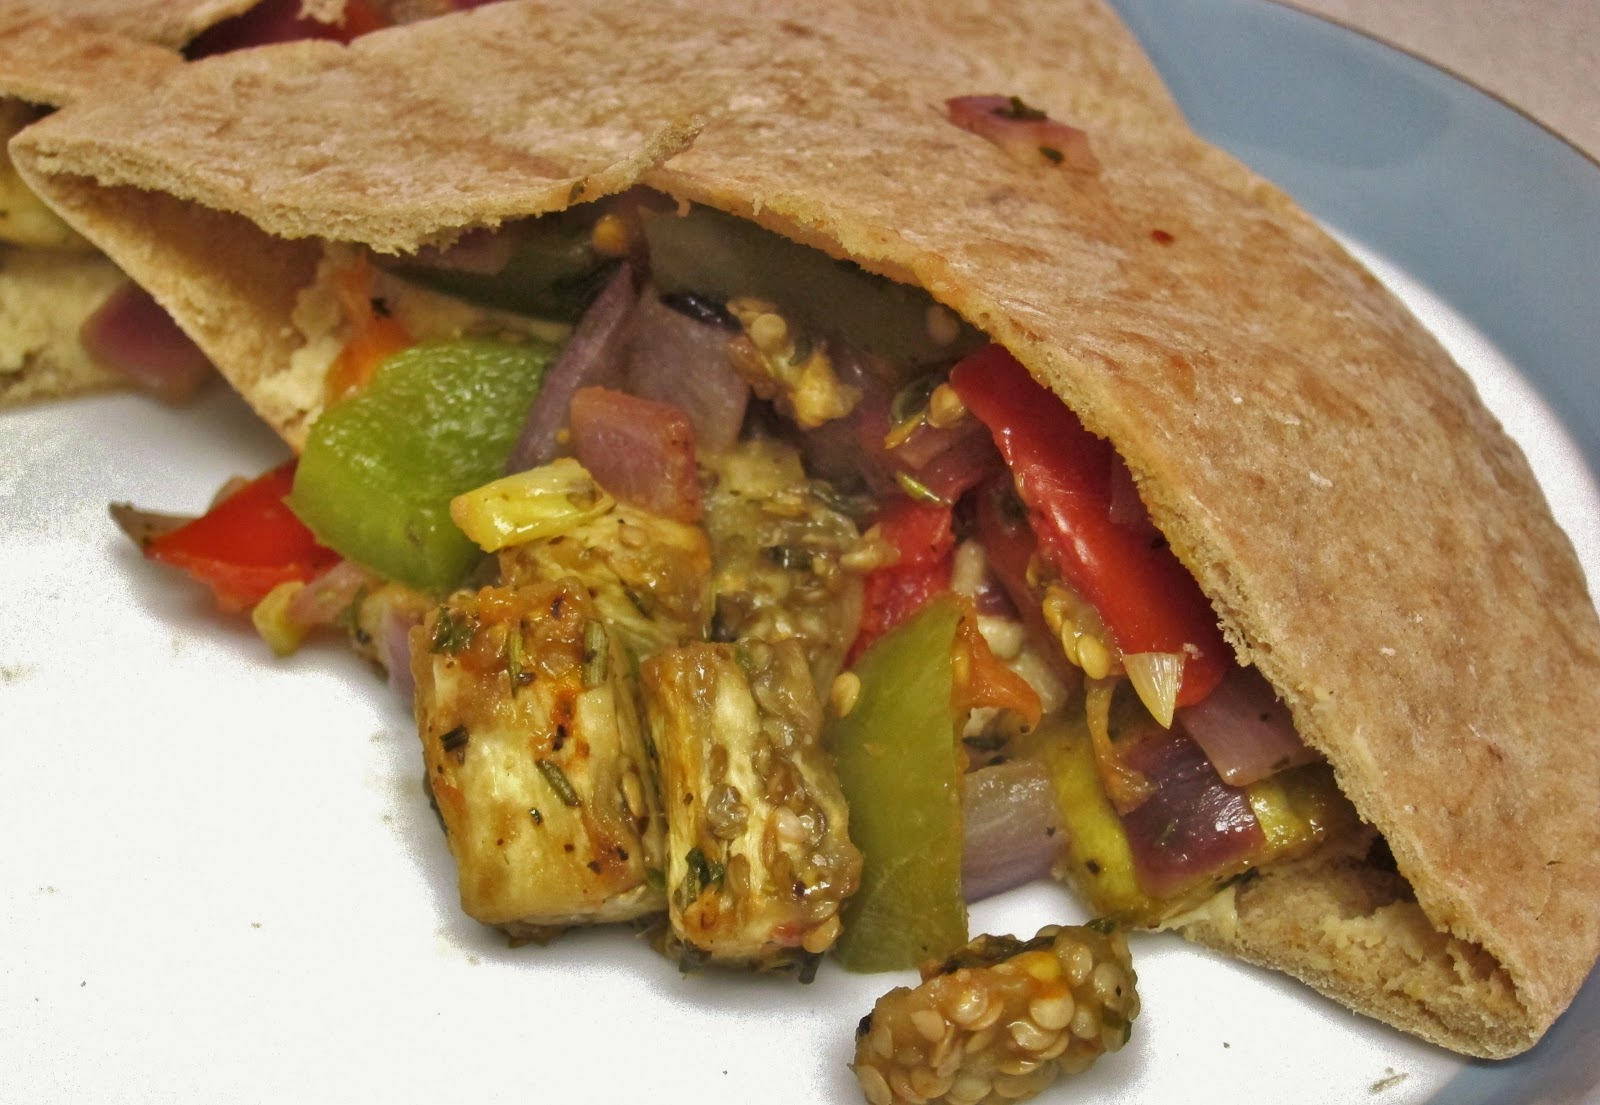 The Vegan Chronicle: Hummus-Stuffed Pita with Roasted Vegetables